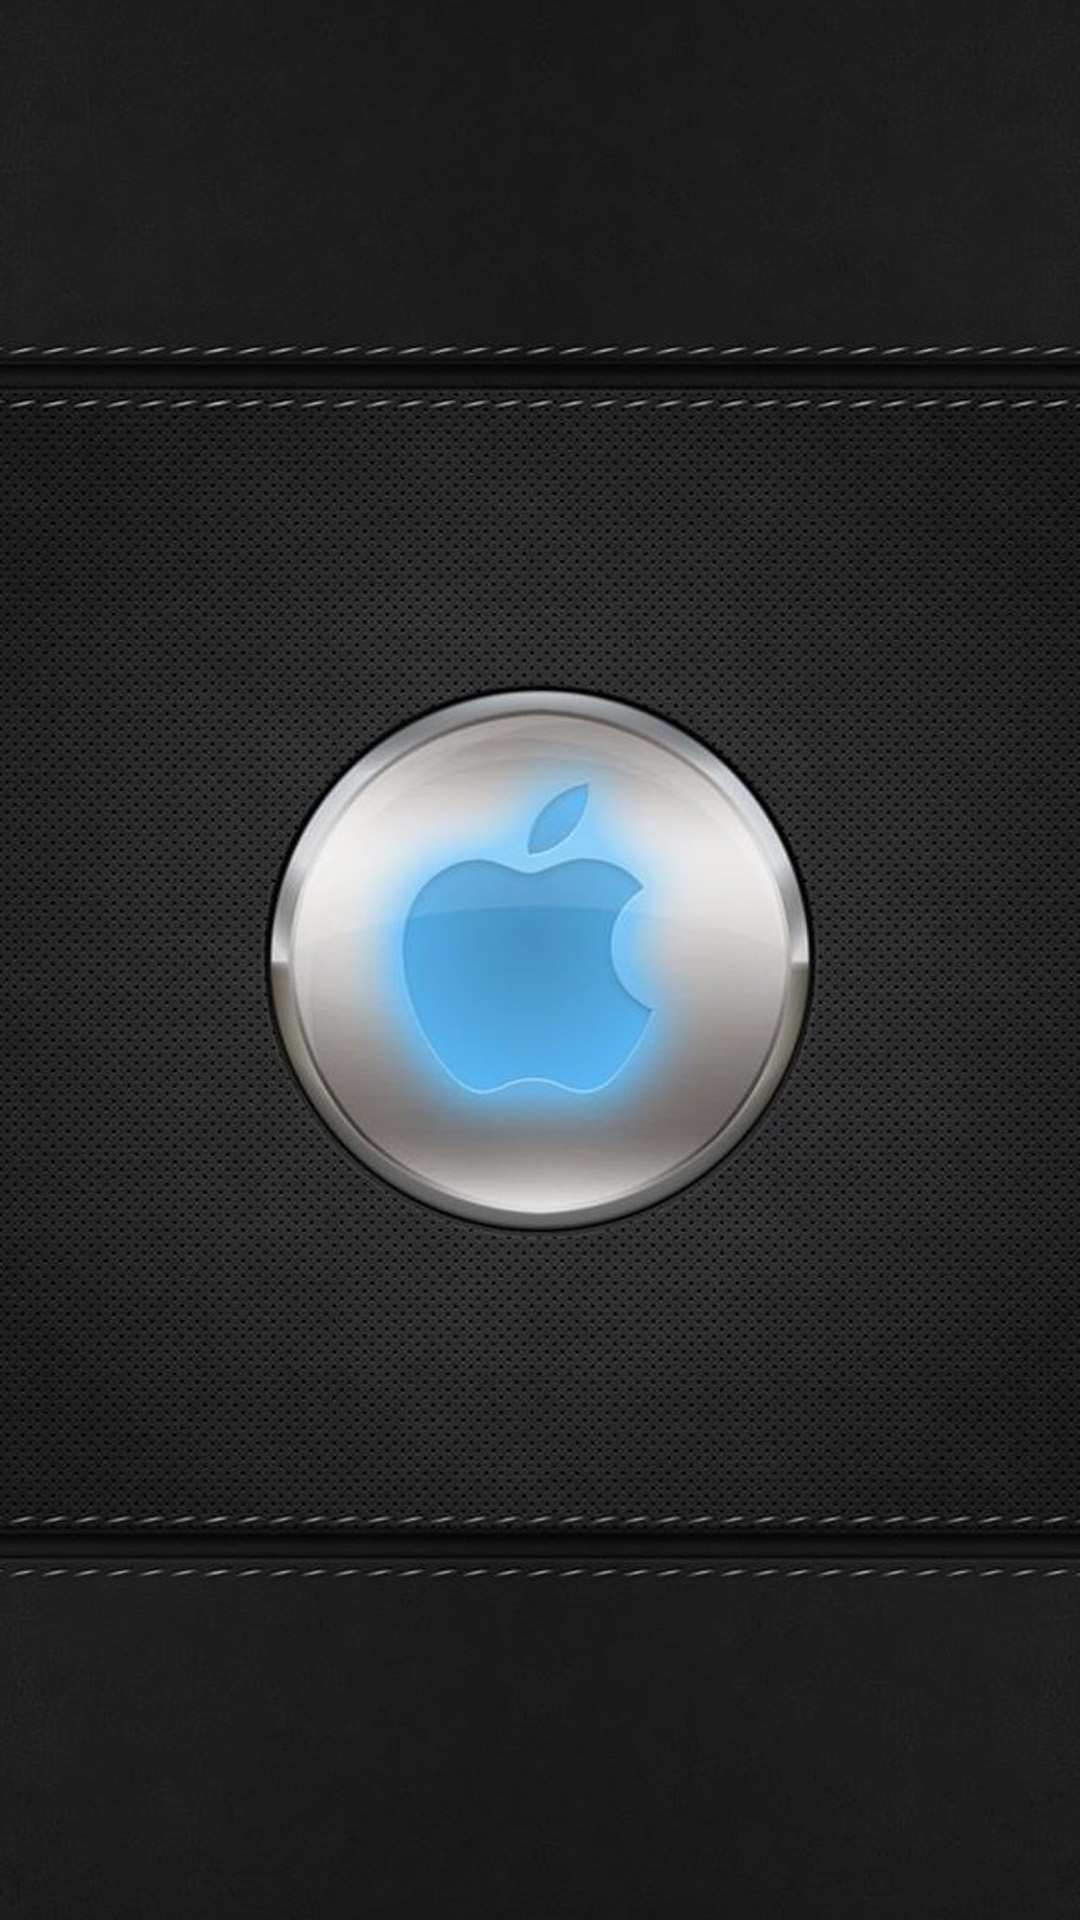 apple iphone wallpapers (17)